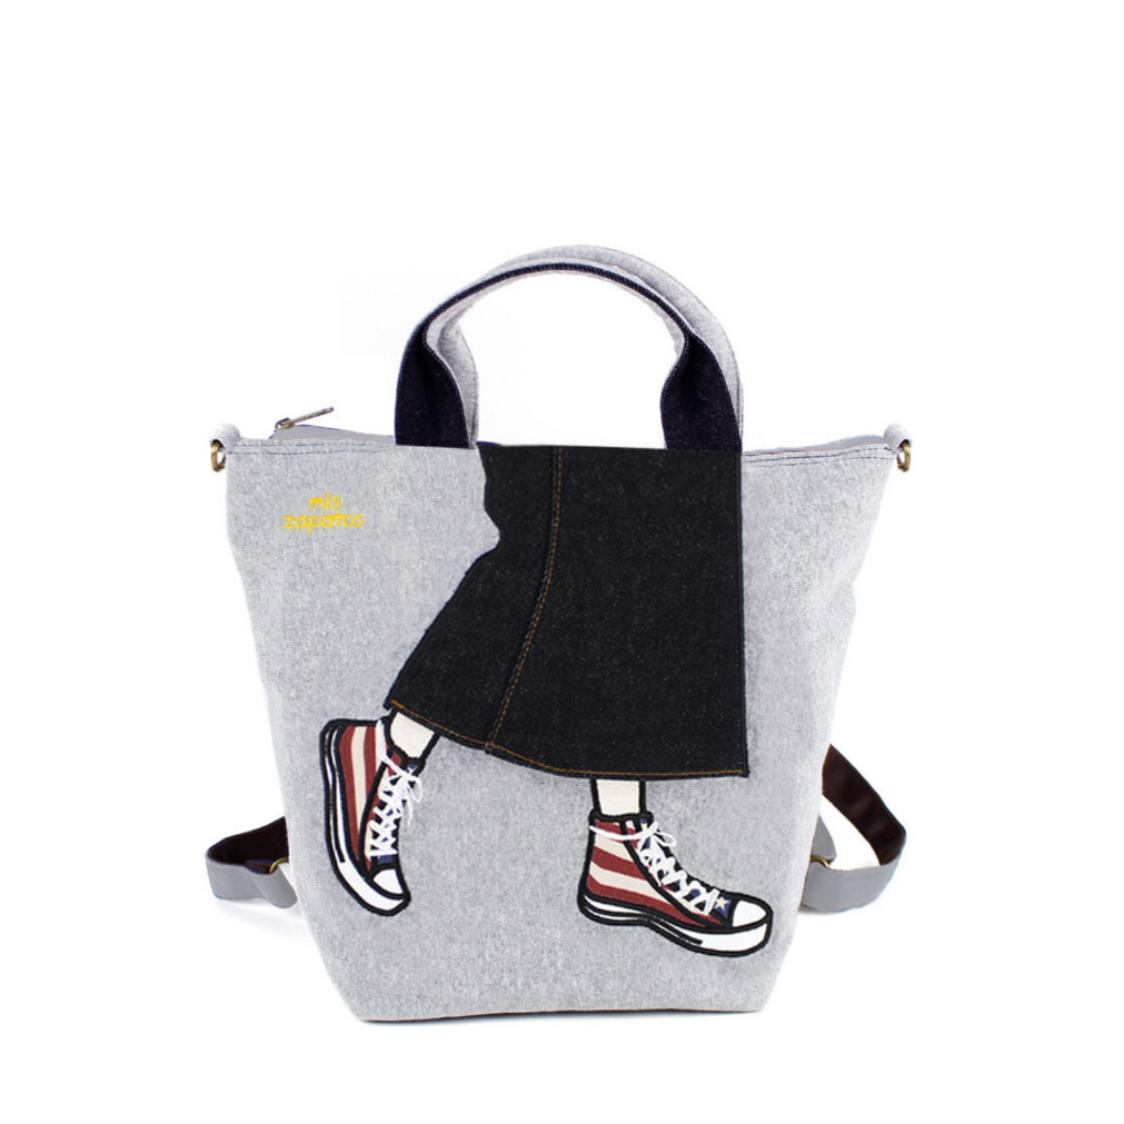 3-Way Use Jeans Skirt with Sneakers Handbag Grey